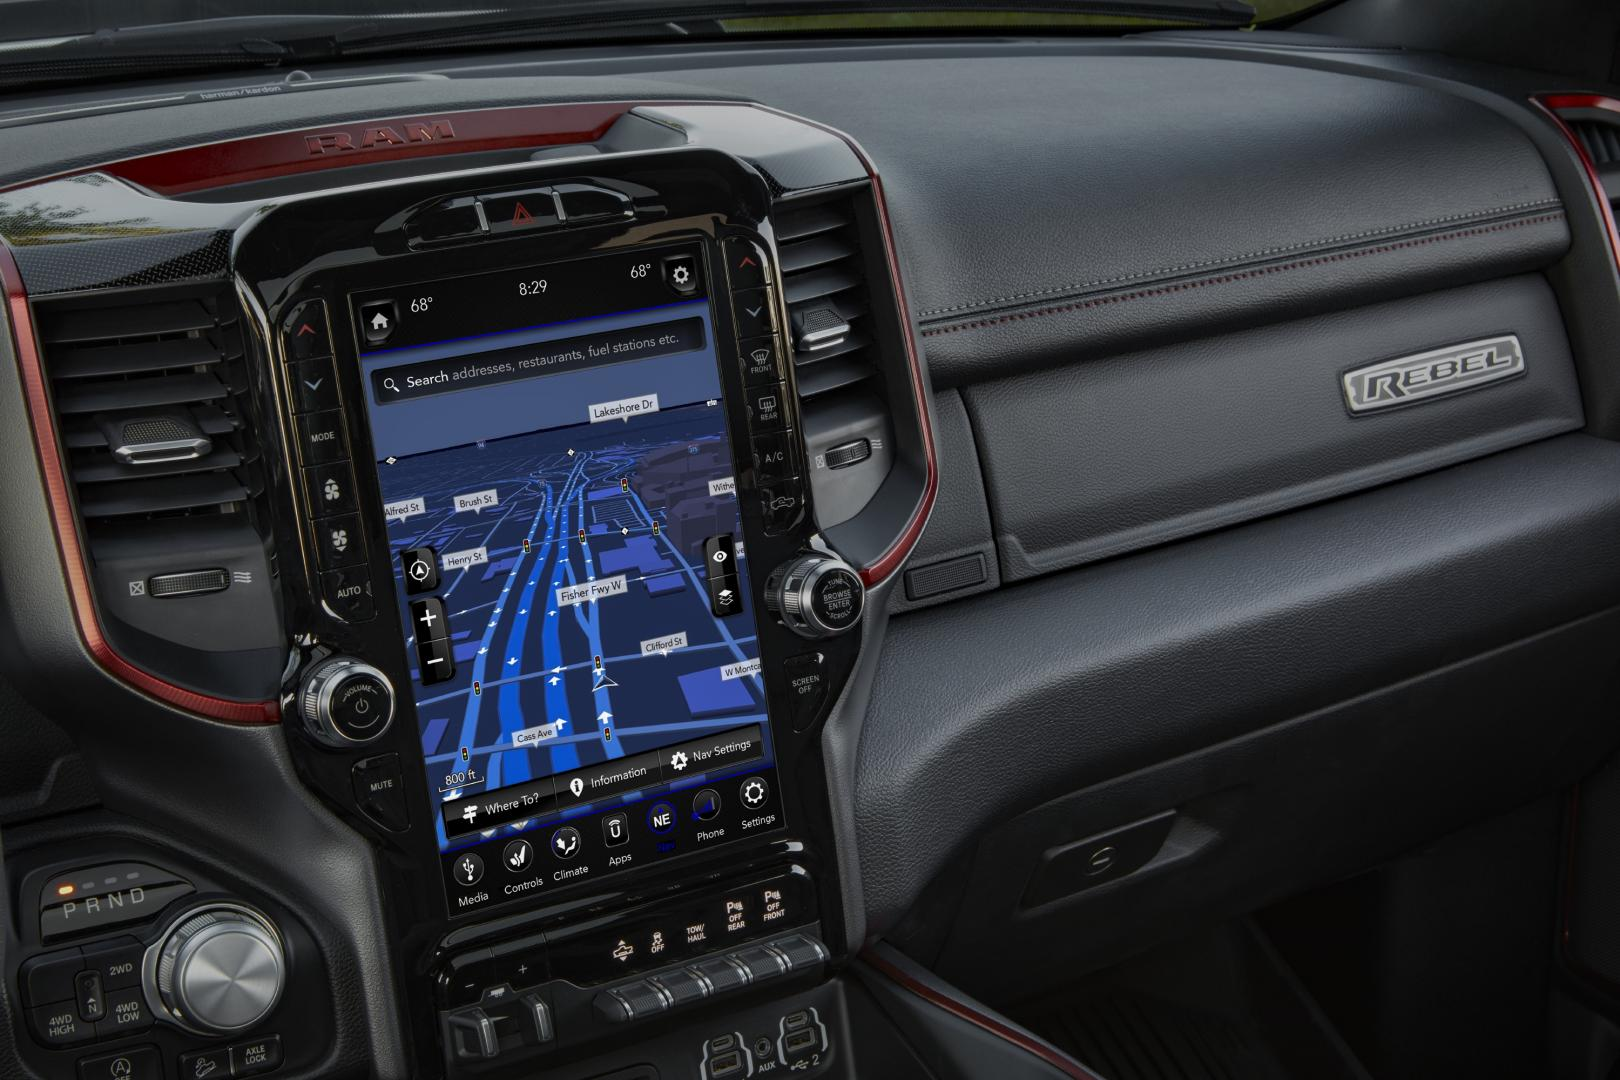 2020 Ram 1500 Rebel interieur dashboard navigatie